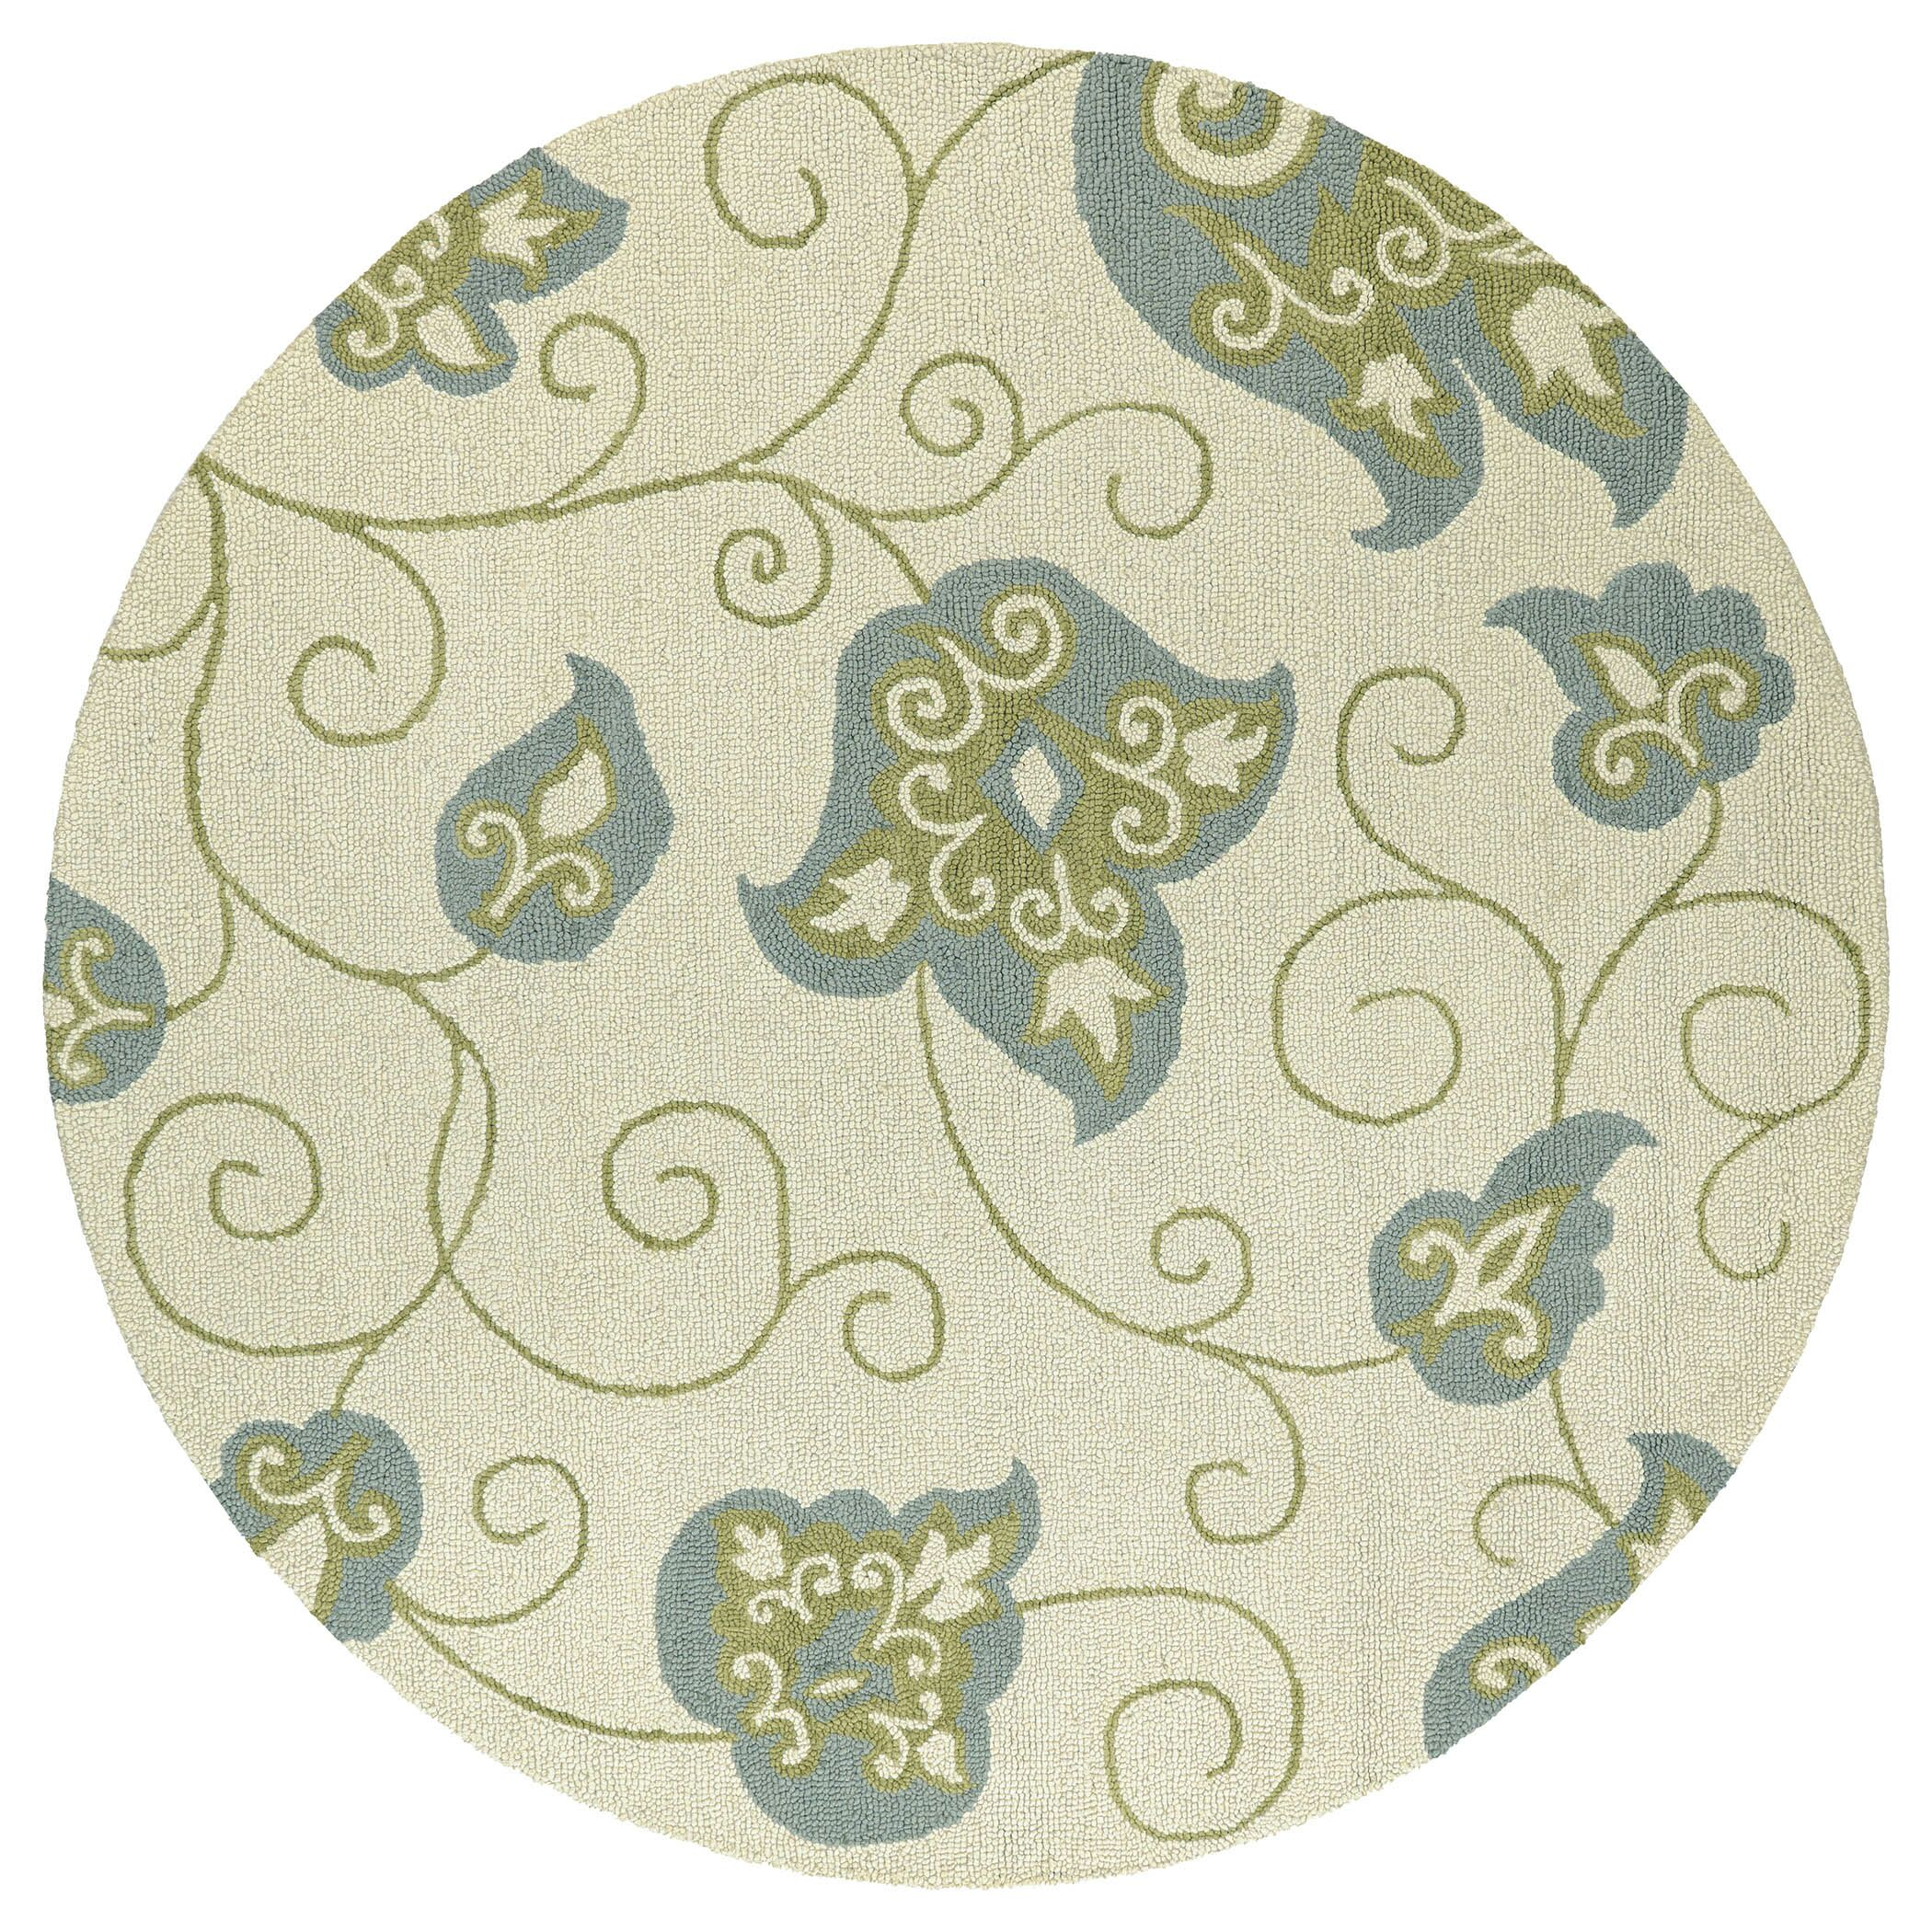 Pearson Handmade Ivory and Gray Area Rug Rug Size: Round 7'9